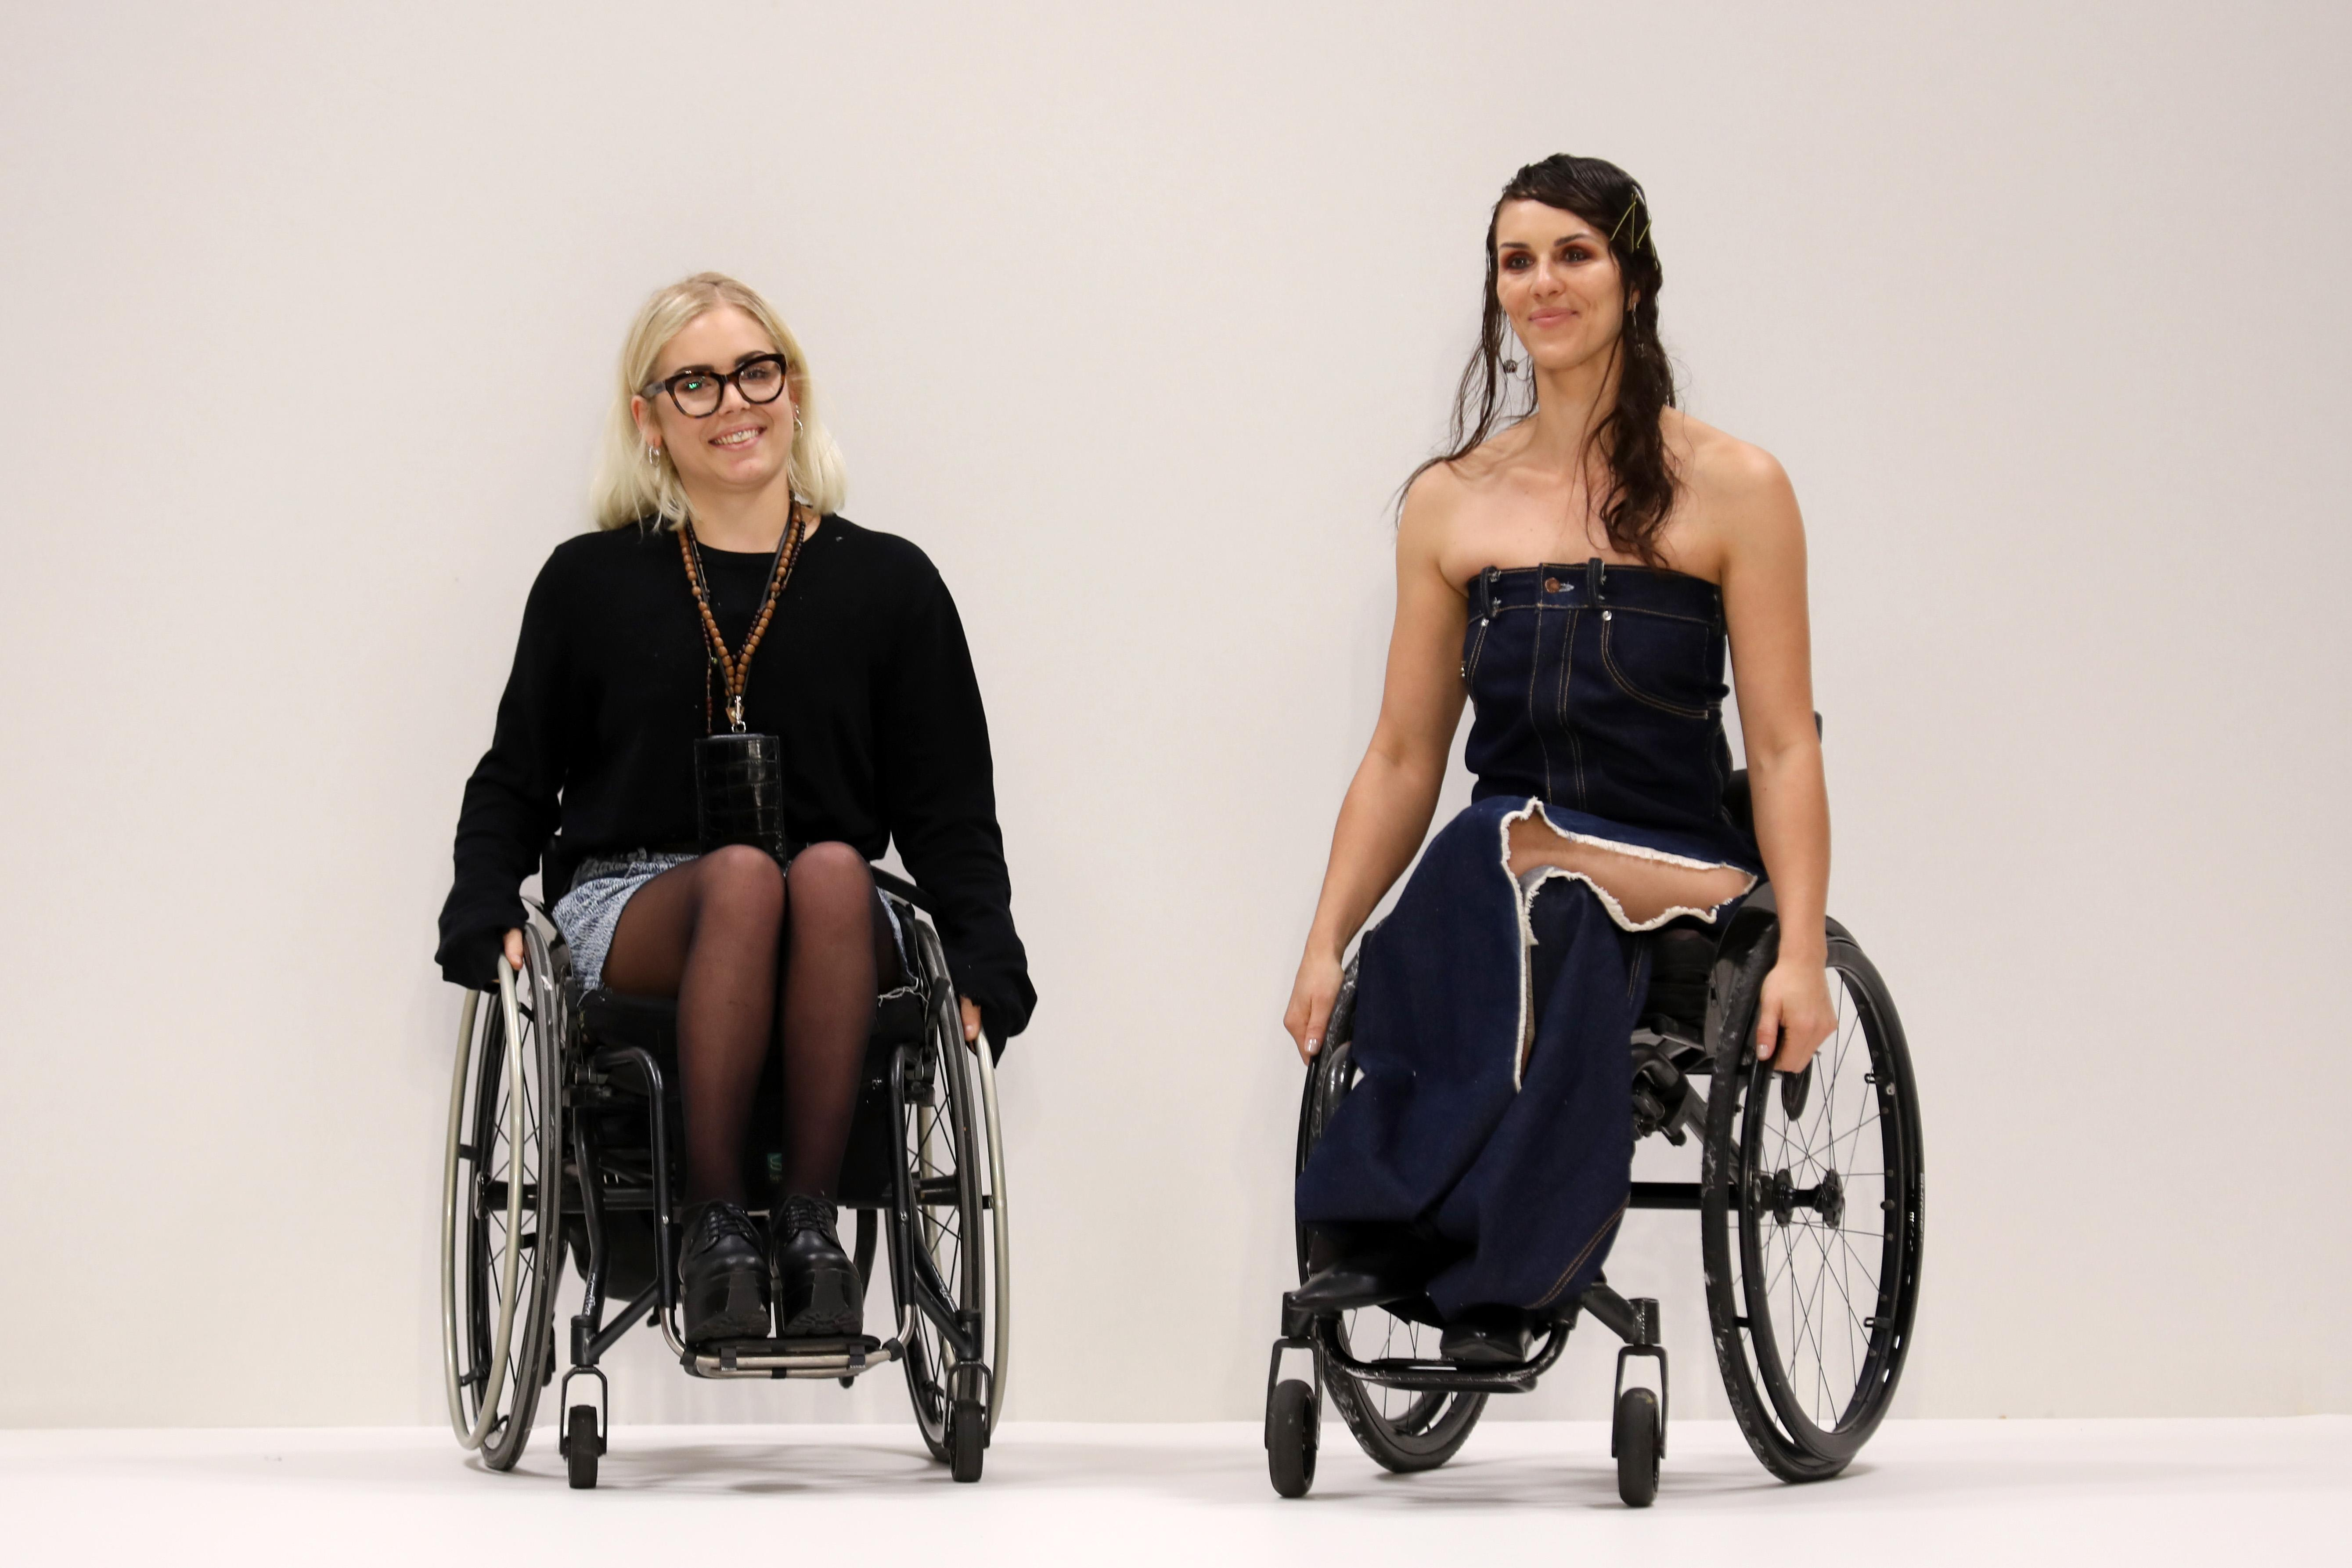 disability models The representation of models with disabilities is particularly paltry in the uk, according to chelsey jay, a campaigner and director of the models with a disability division at non-profit organisation models of diversity jay started using a wheelchair three years ago and argues that models should be representative of the population.